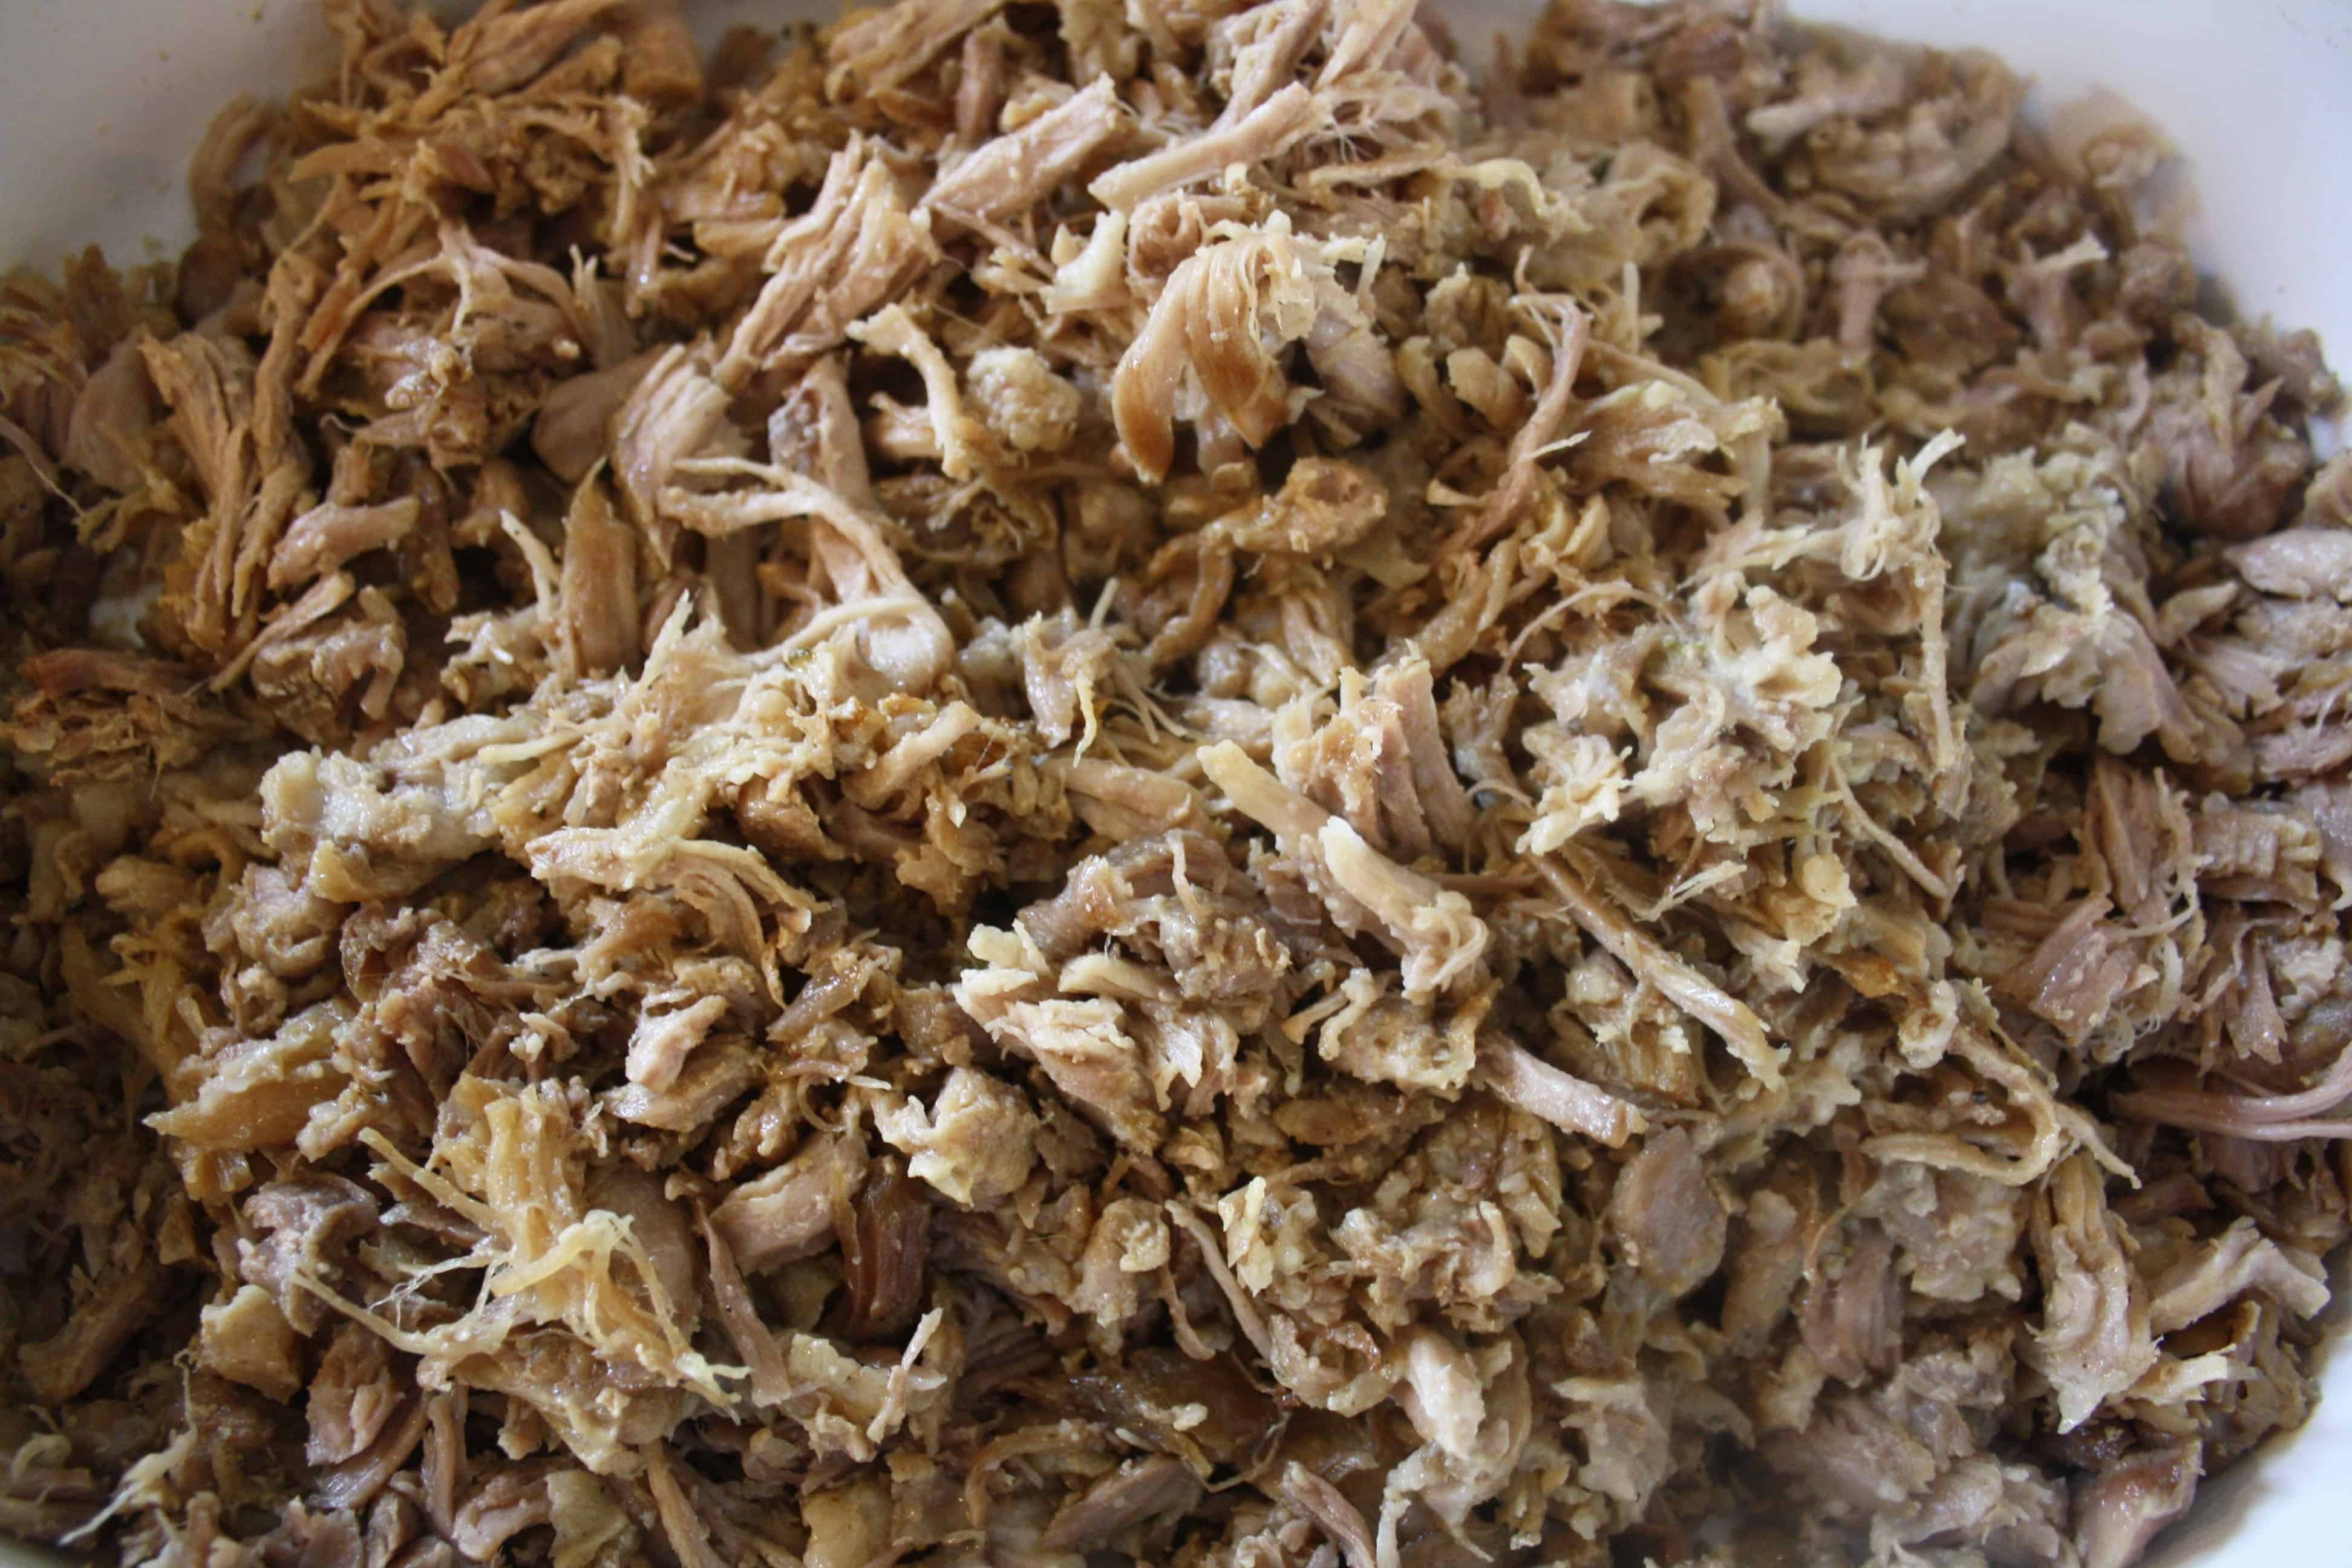 cooked shredded pork meat in a bowl.